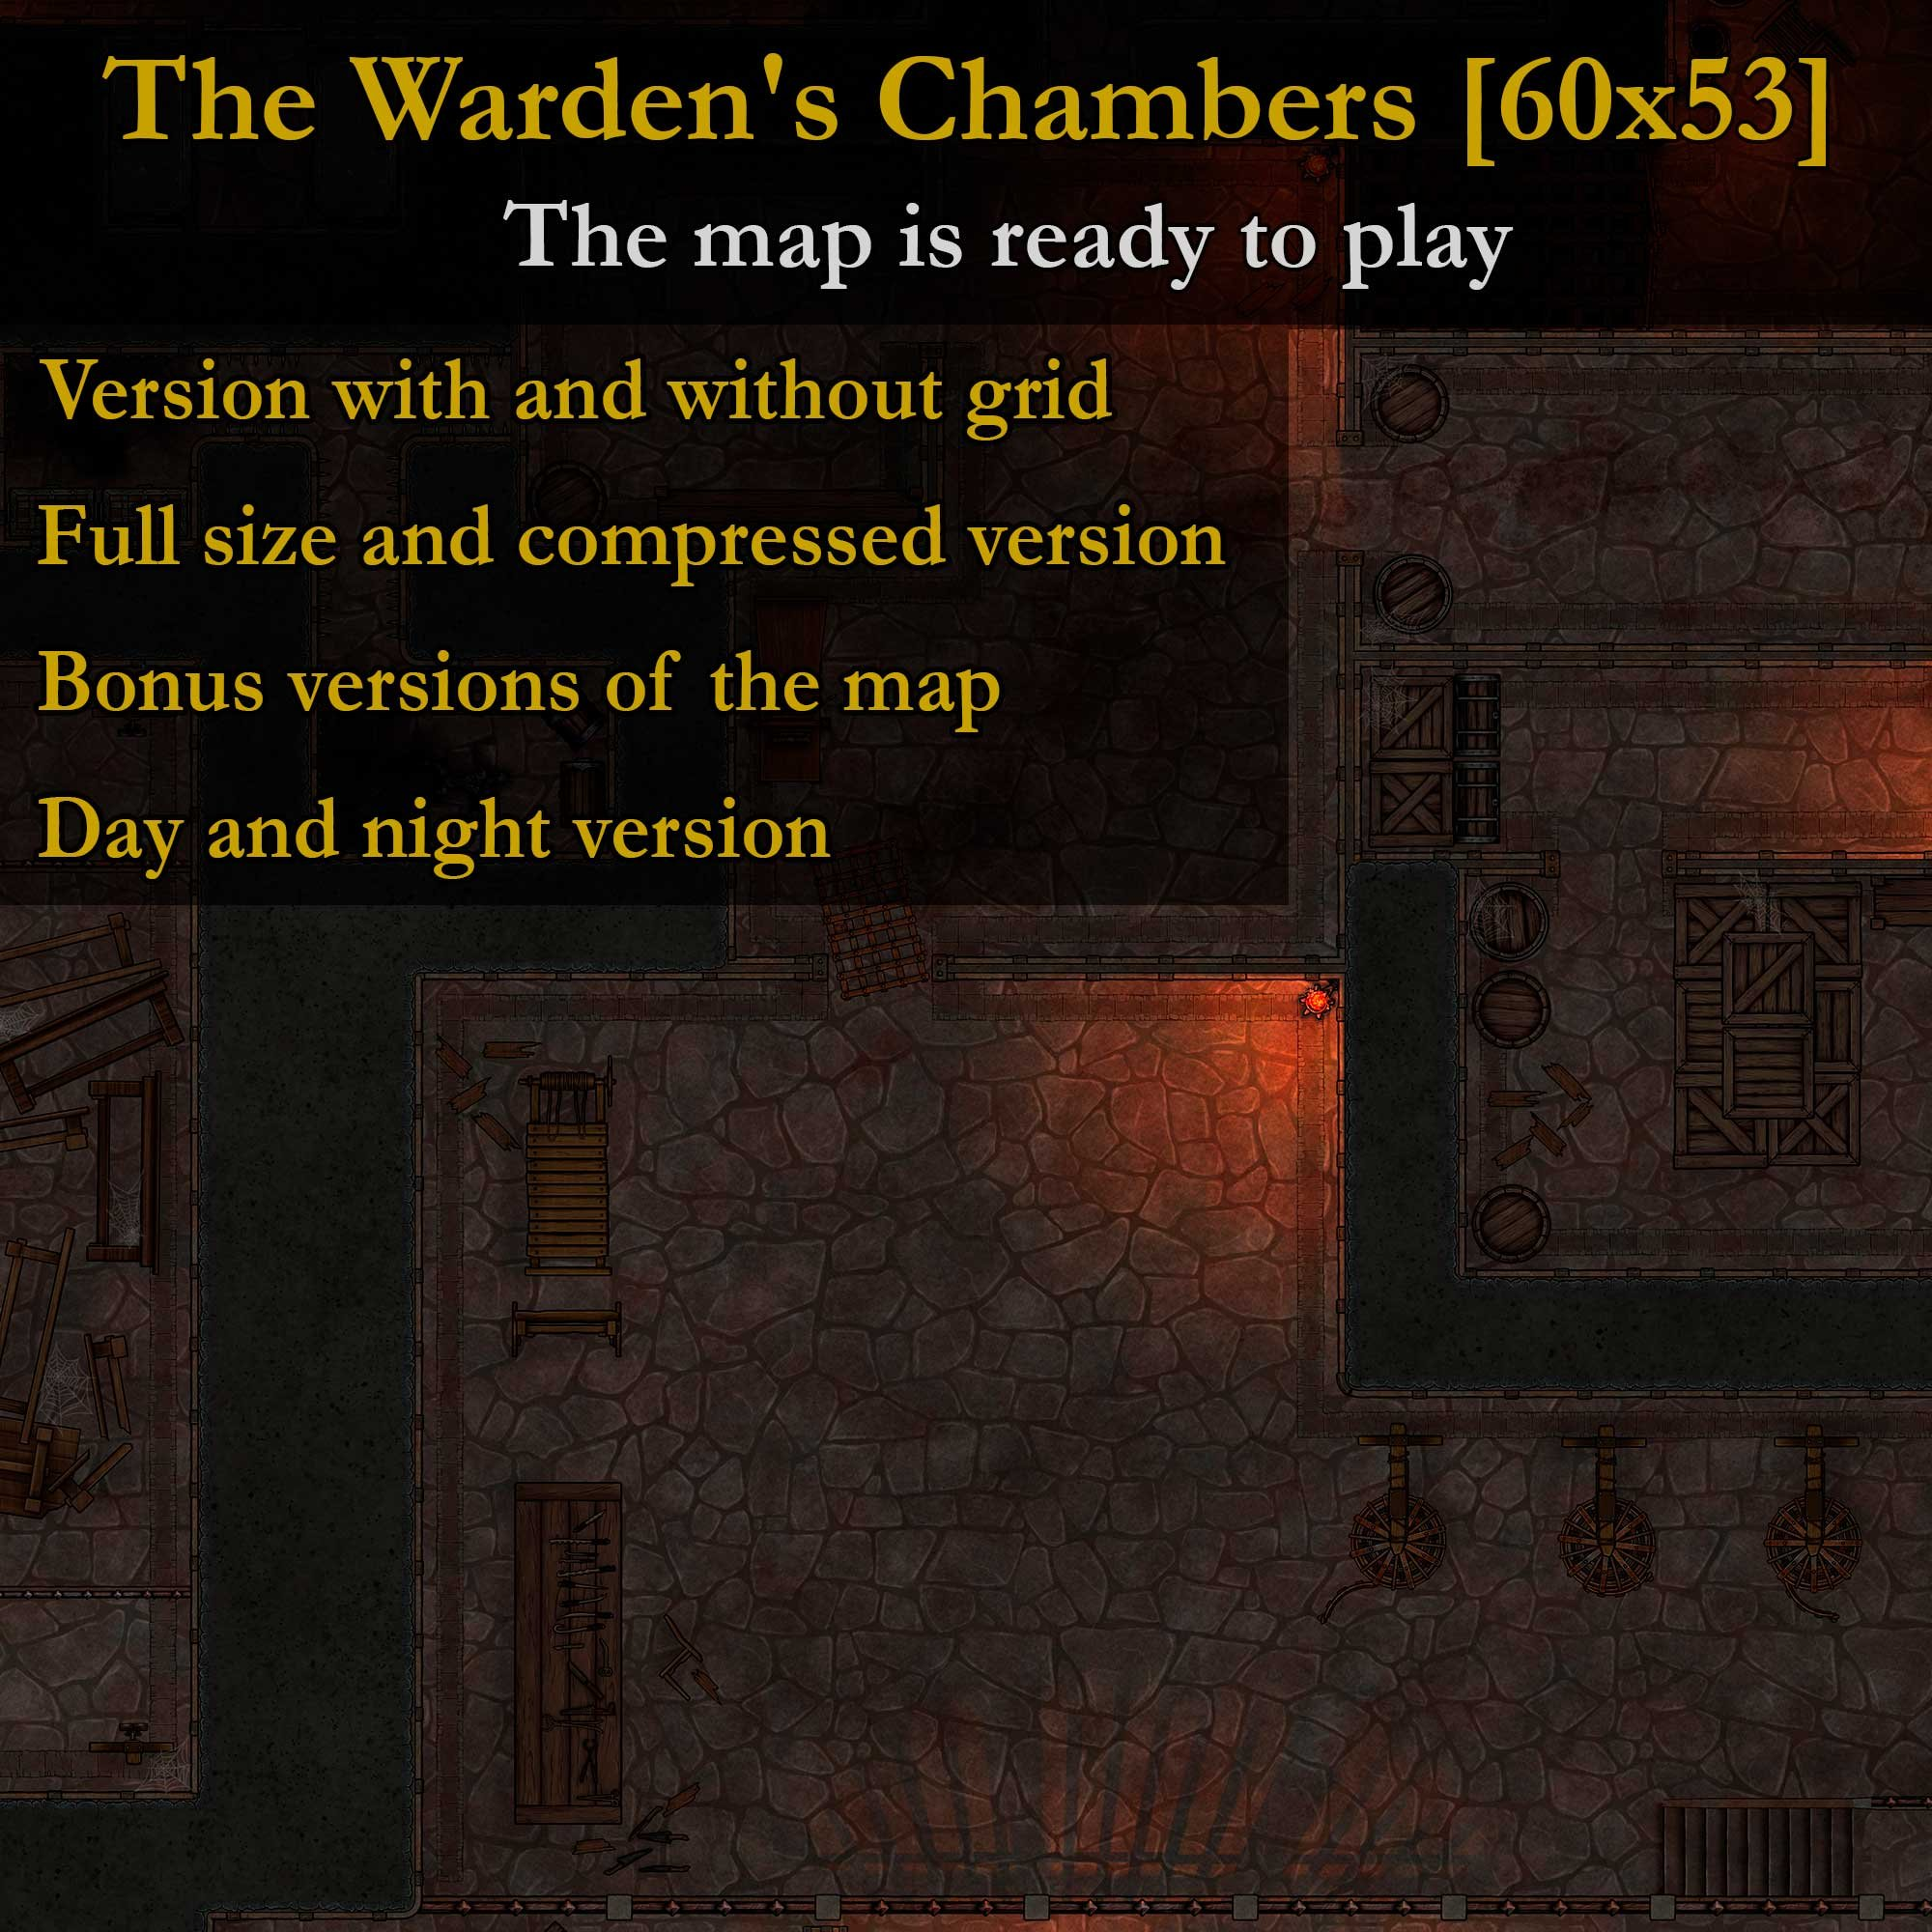 The Warden's Chambers (Path Of Exile) [60x53] – Large detailed map ready to play